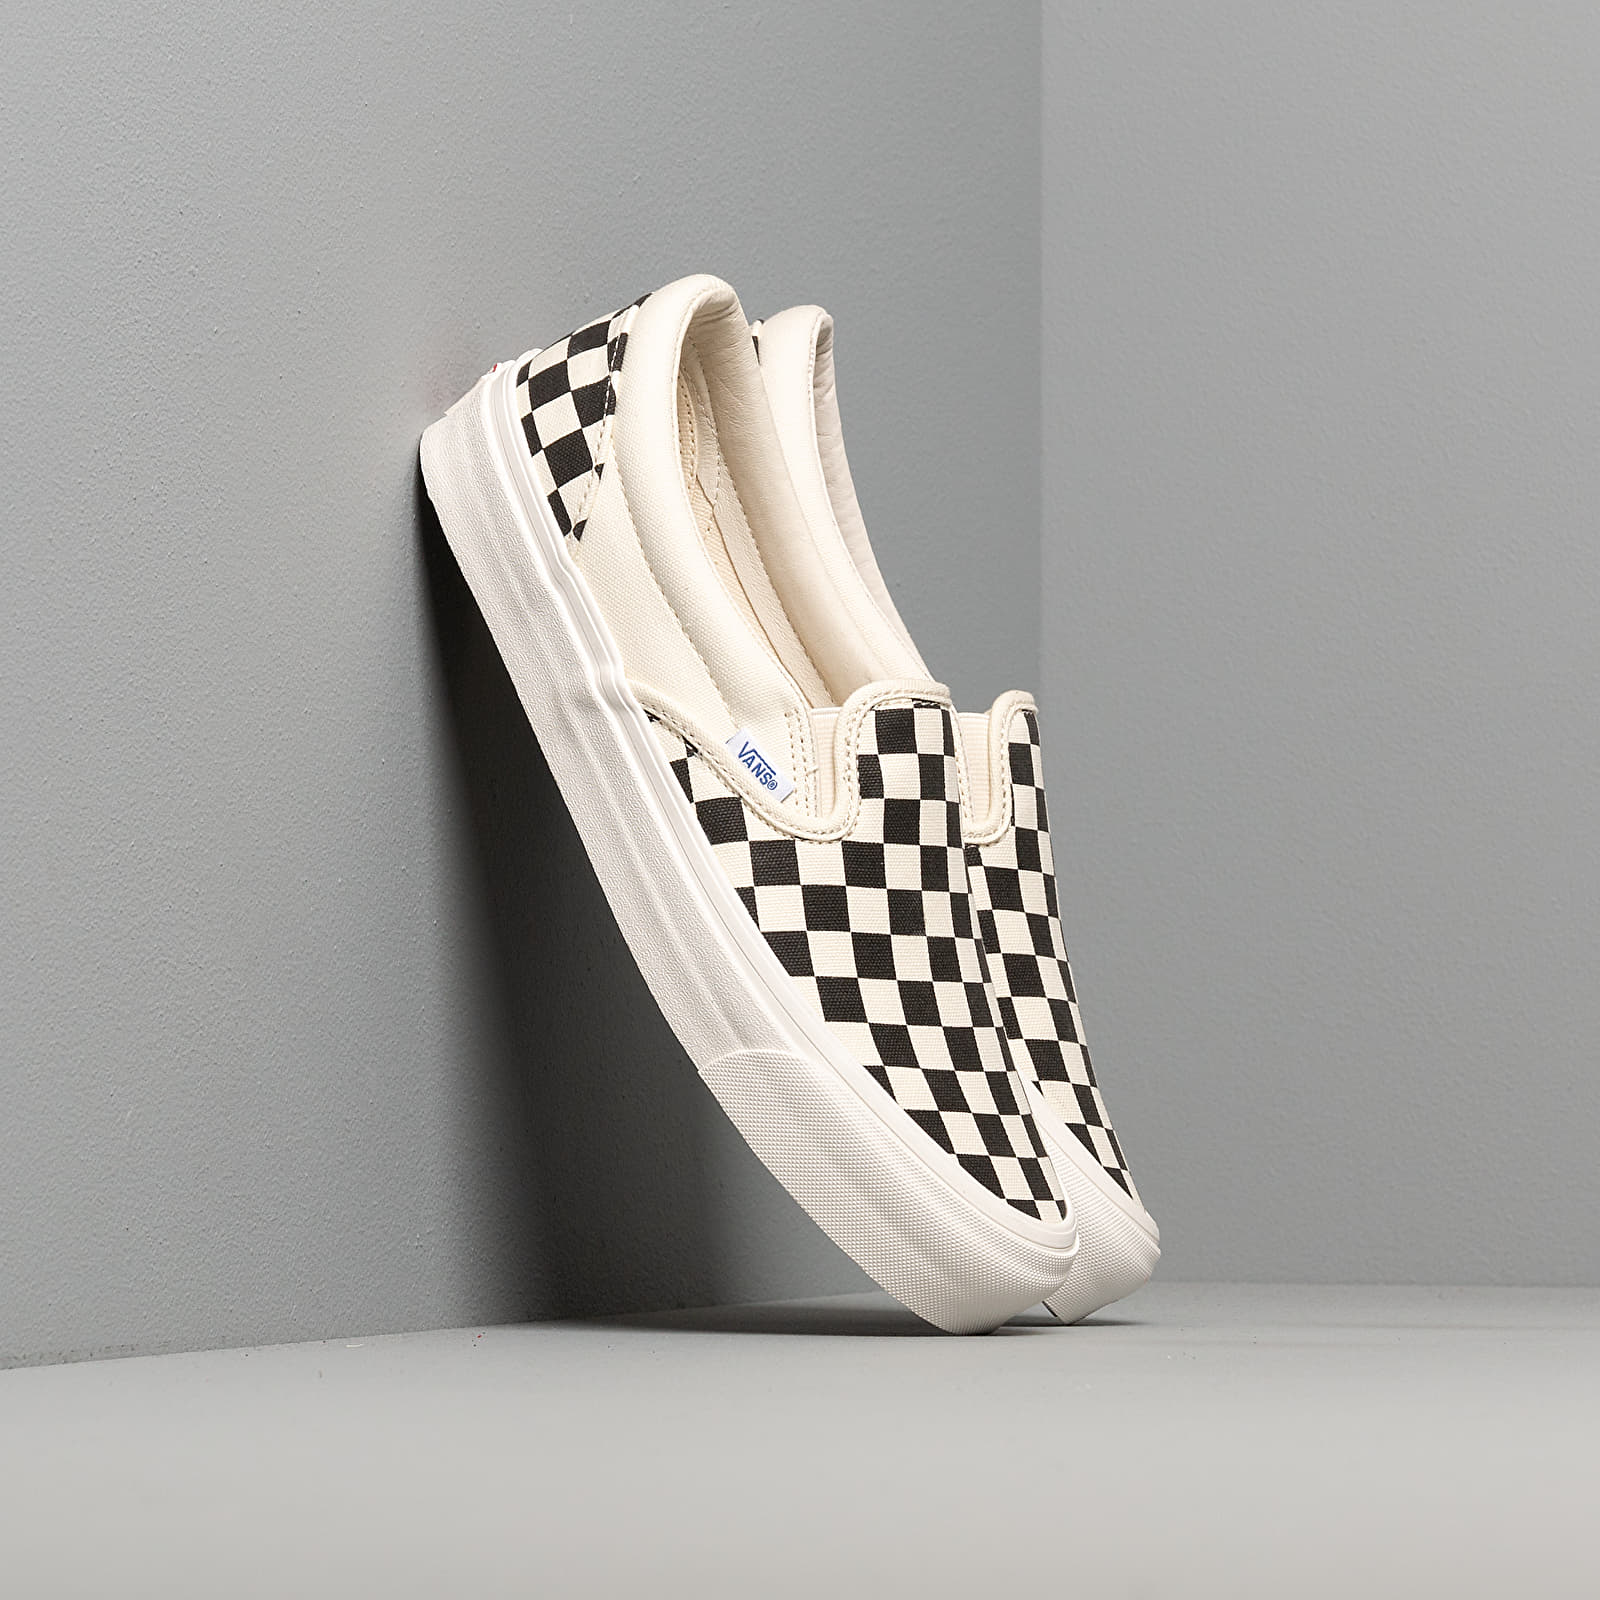 Vans OG Classic Slip On LX (Canvas) Black White Checkerboard | Footshop